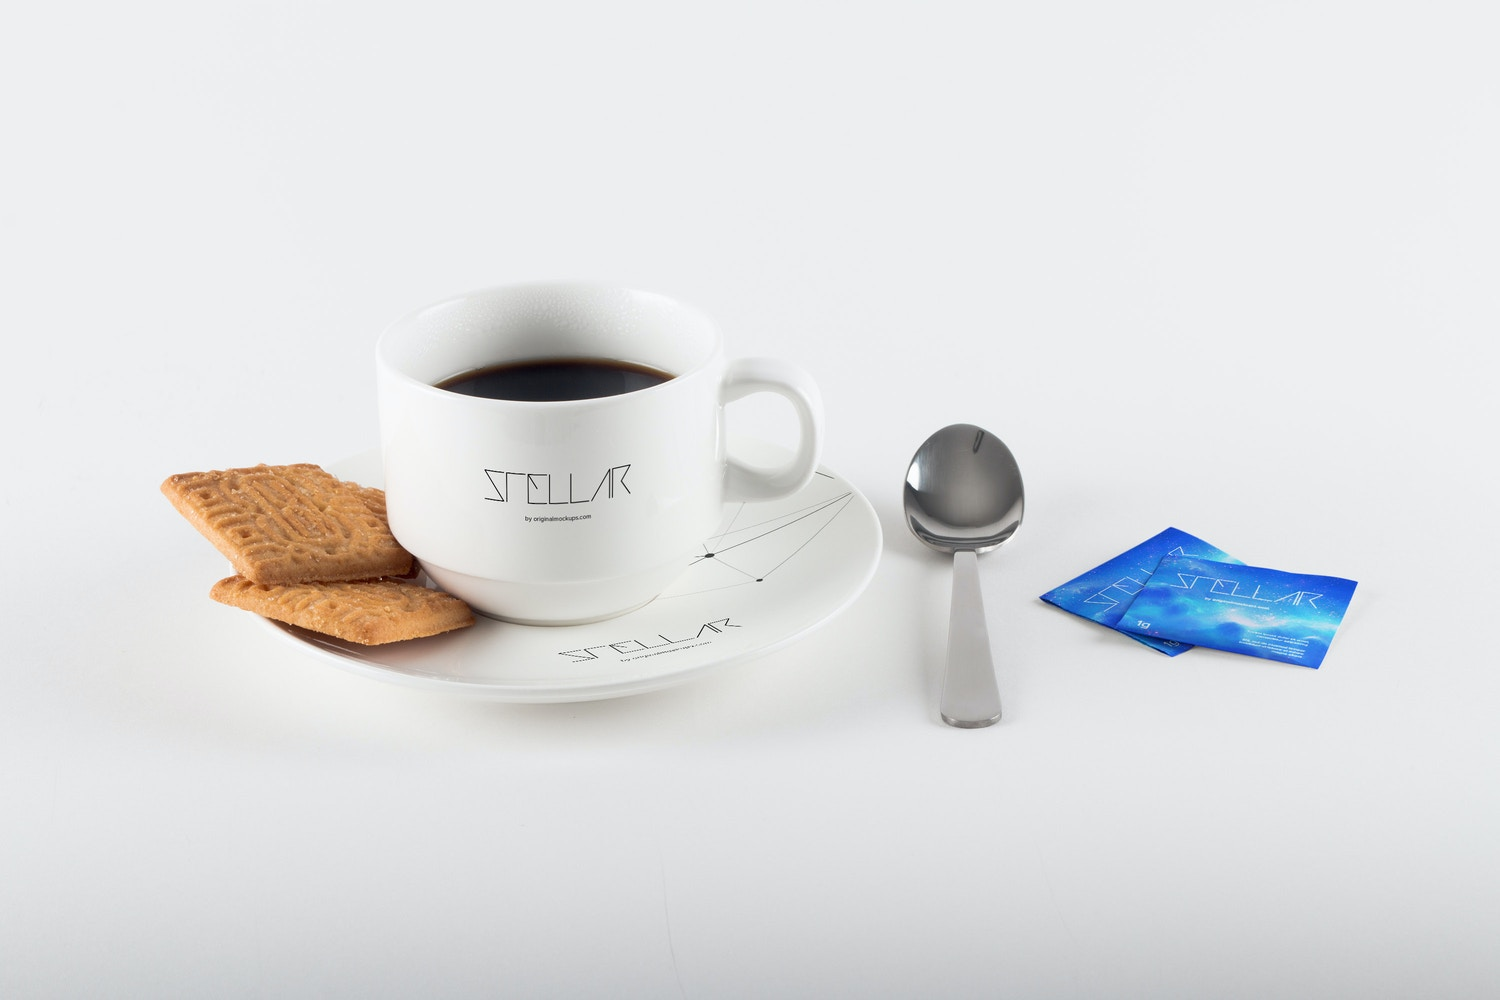 Coffee Cup with Cookies Mockup 02 por Original Mockups en Original Mockups